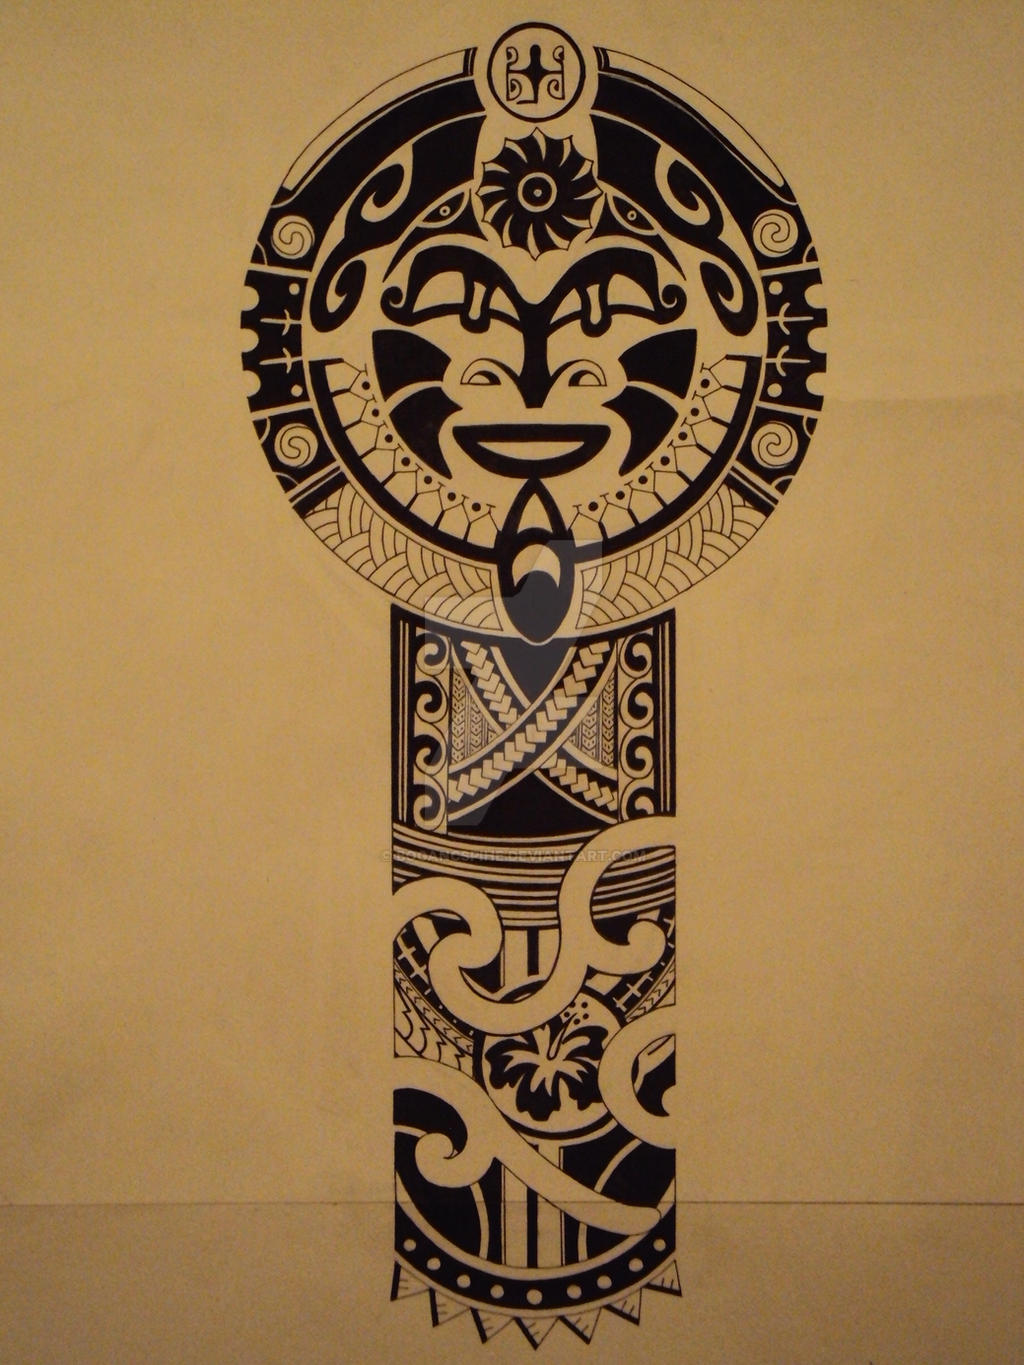 polynesian tattoo pattern for jocomella by bogancspihe on deviantart. Black Bedroom Furniture Sets. Home Design Ideas